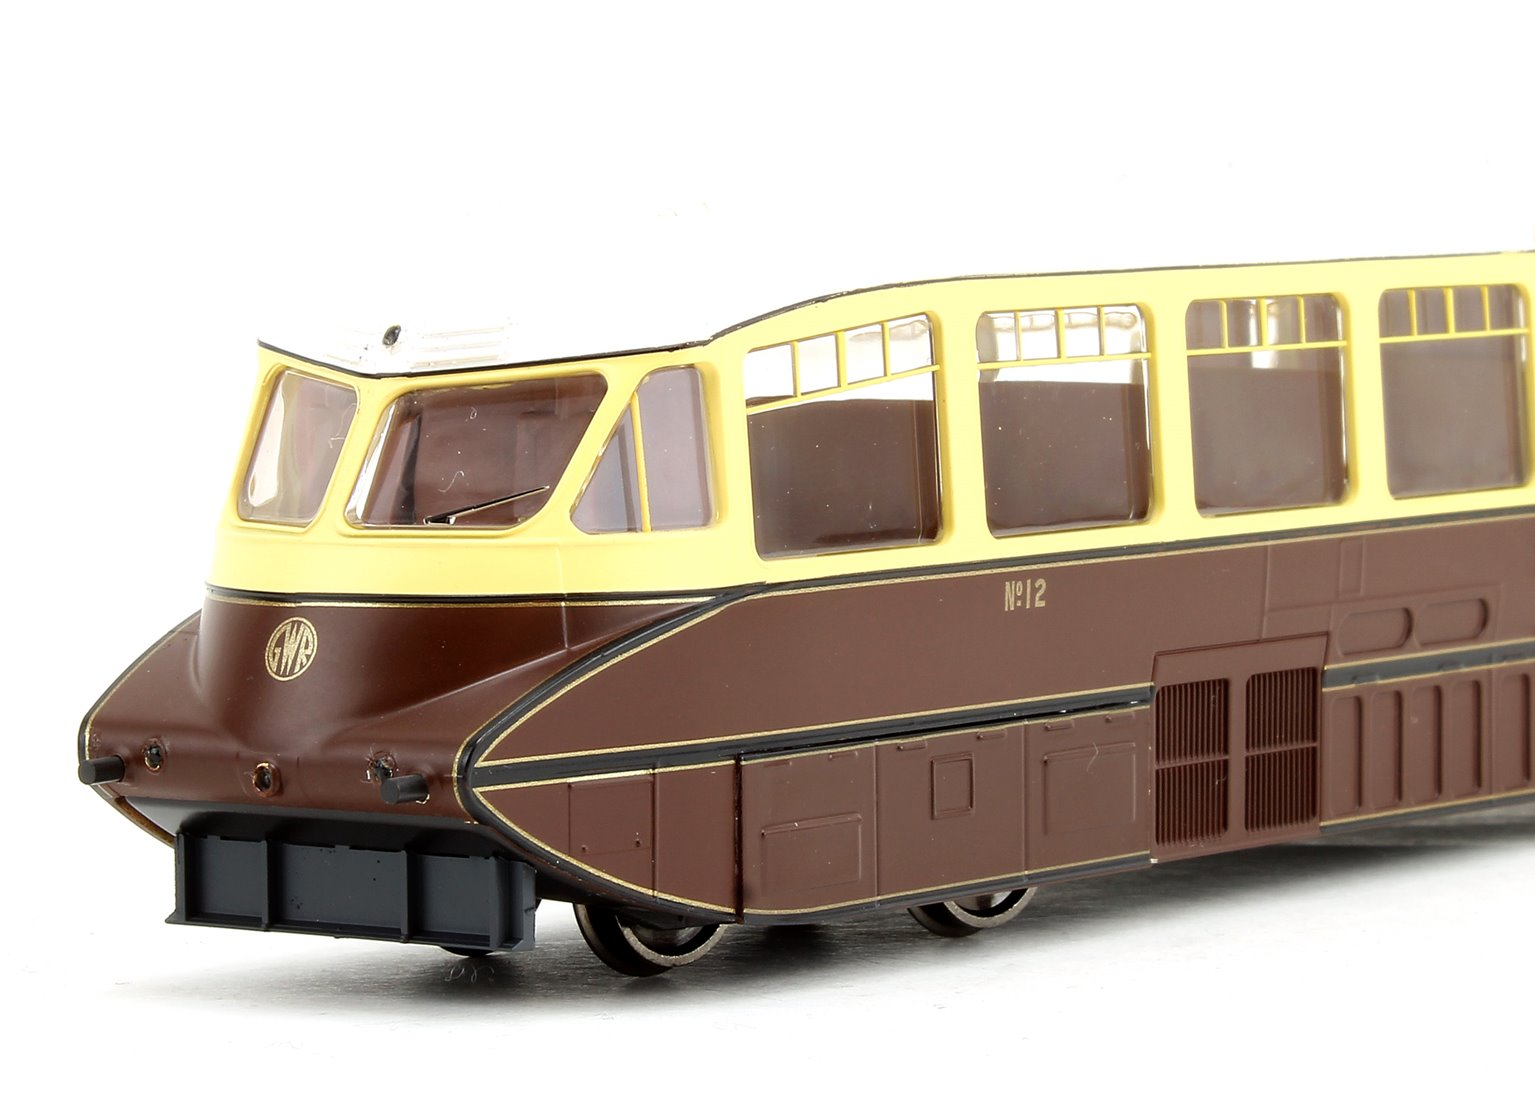 Streamlined Railcar GWR Lined Chocolate/Cream No.12 - DCC Fitted